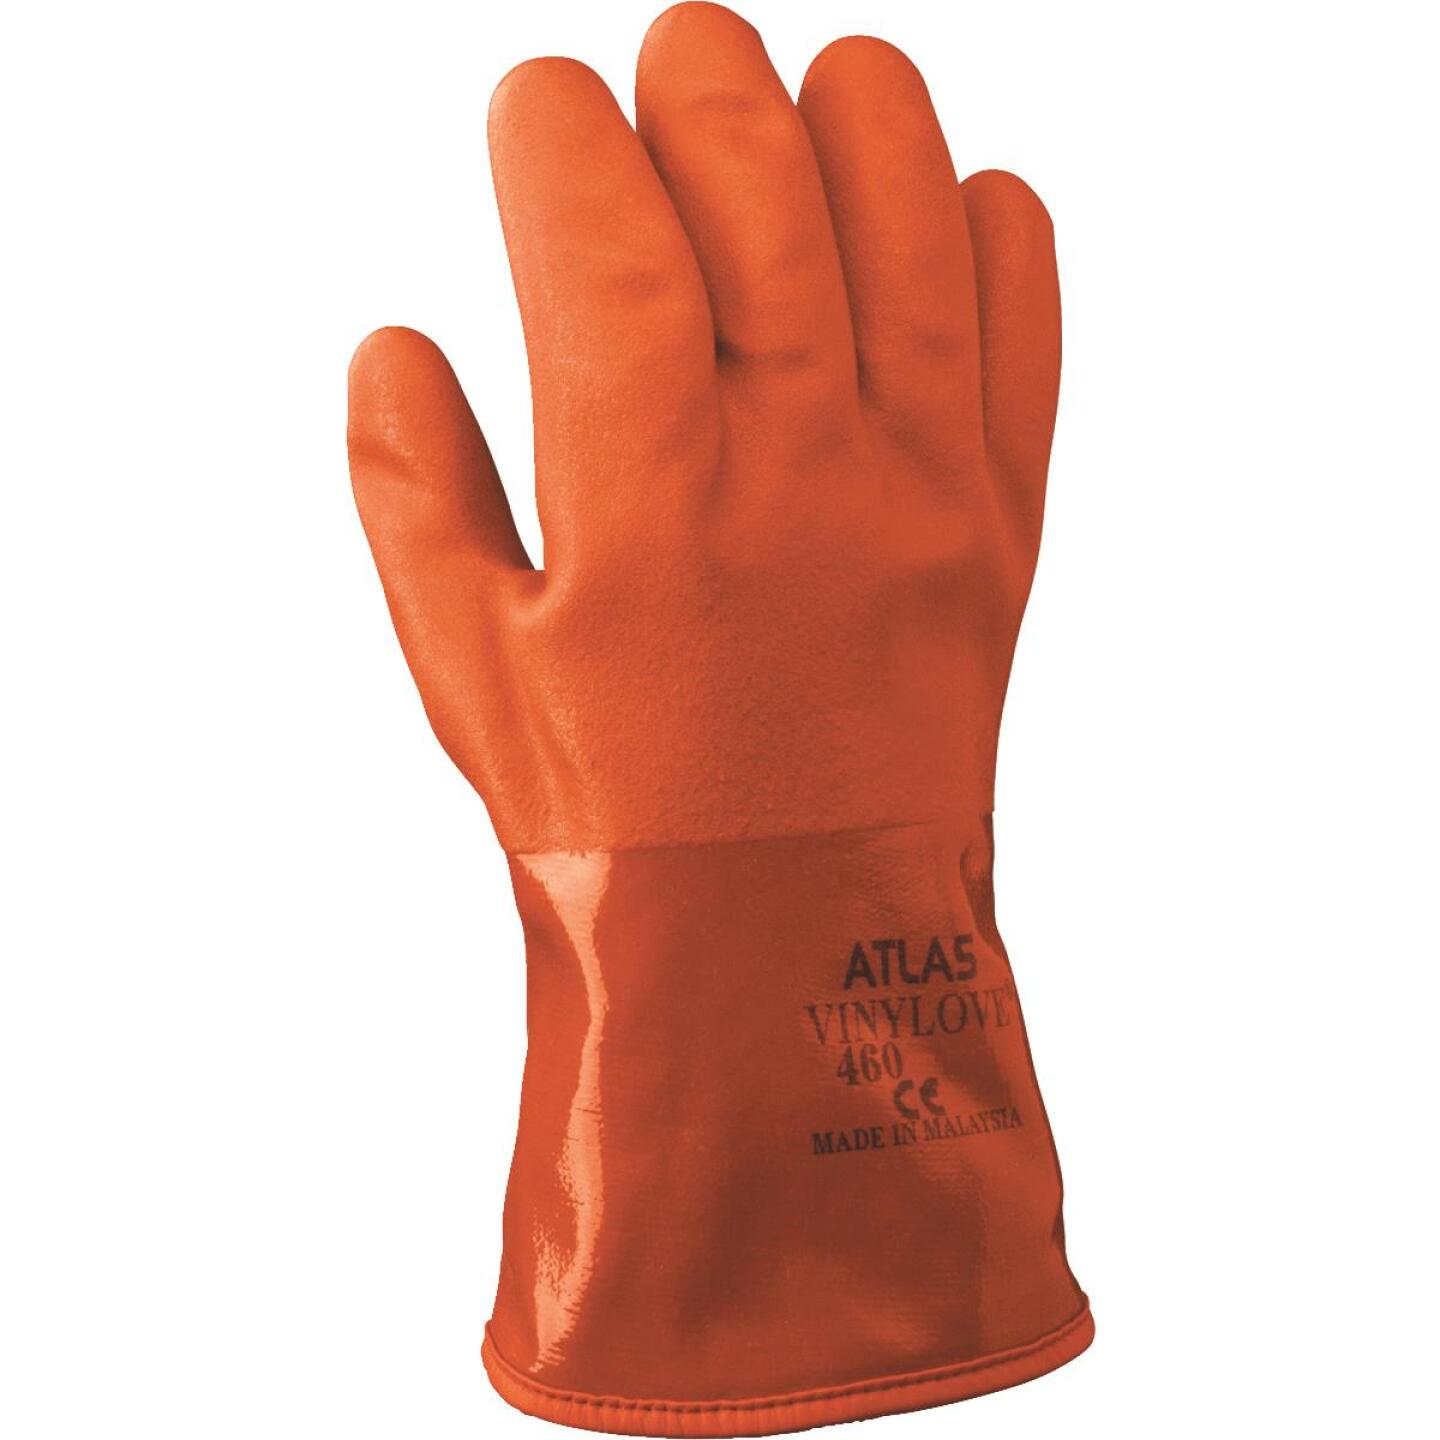 Atlas Men's Large Double-Dipped PVC Winter Work Glove Image 1